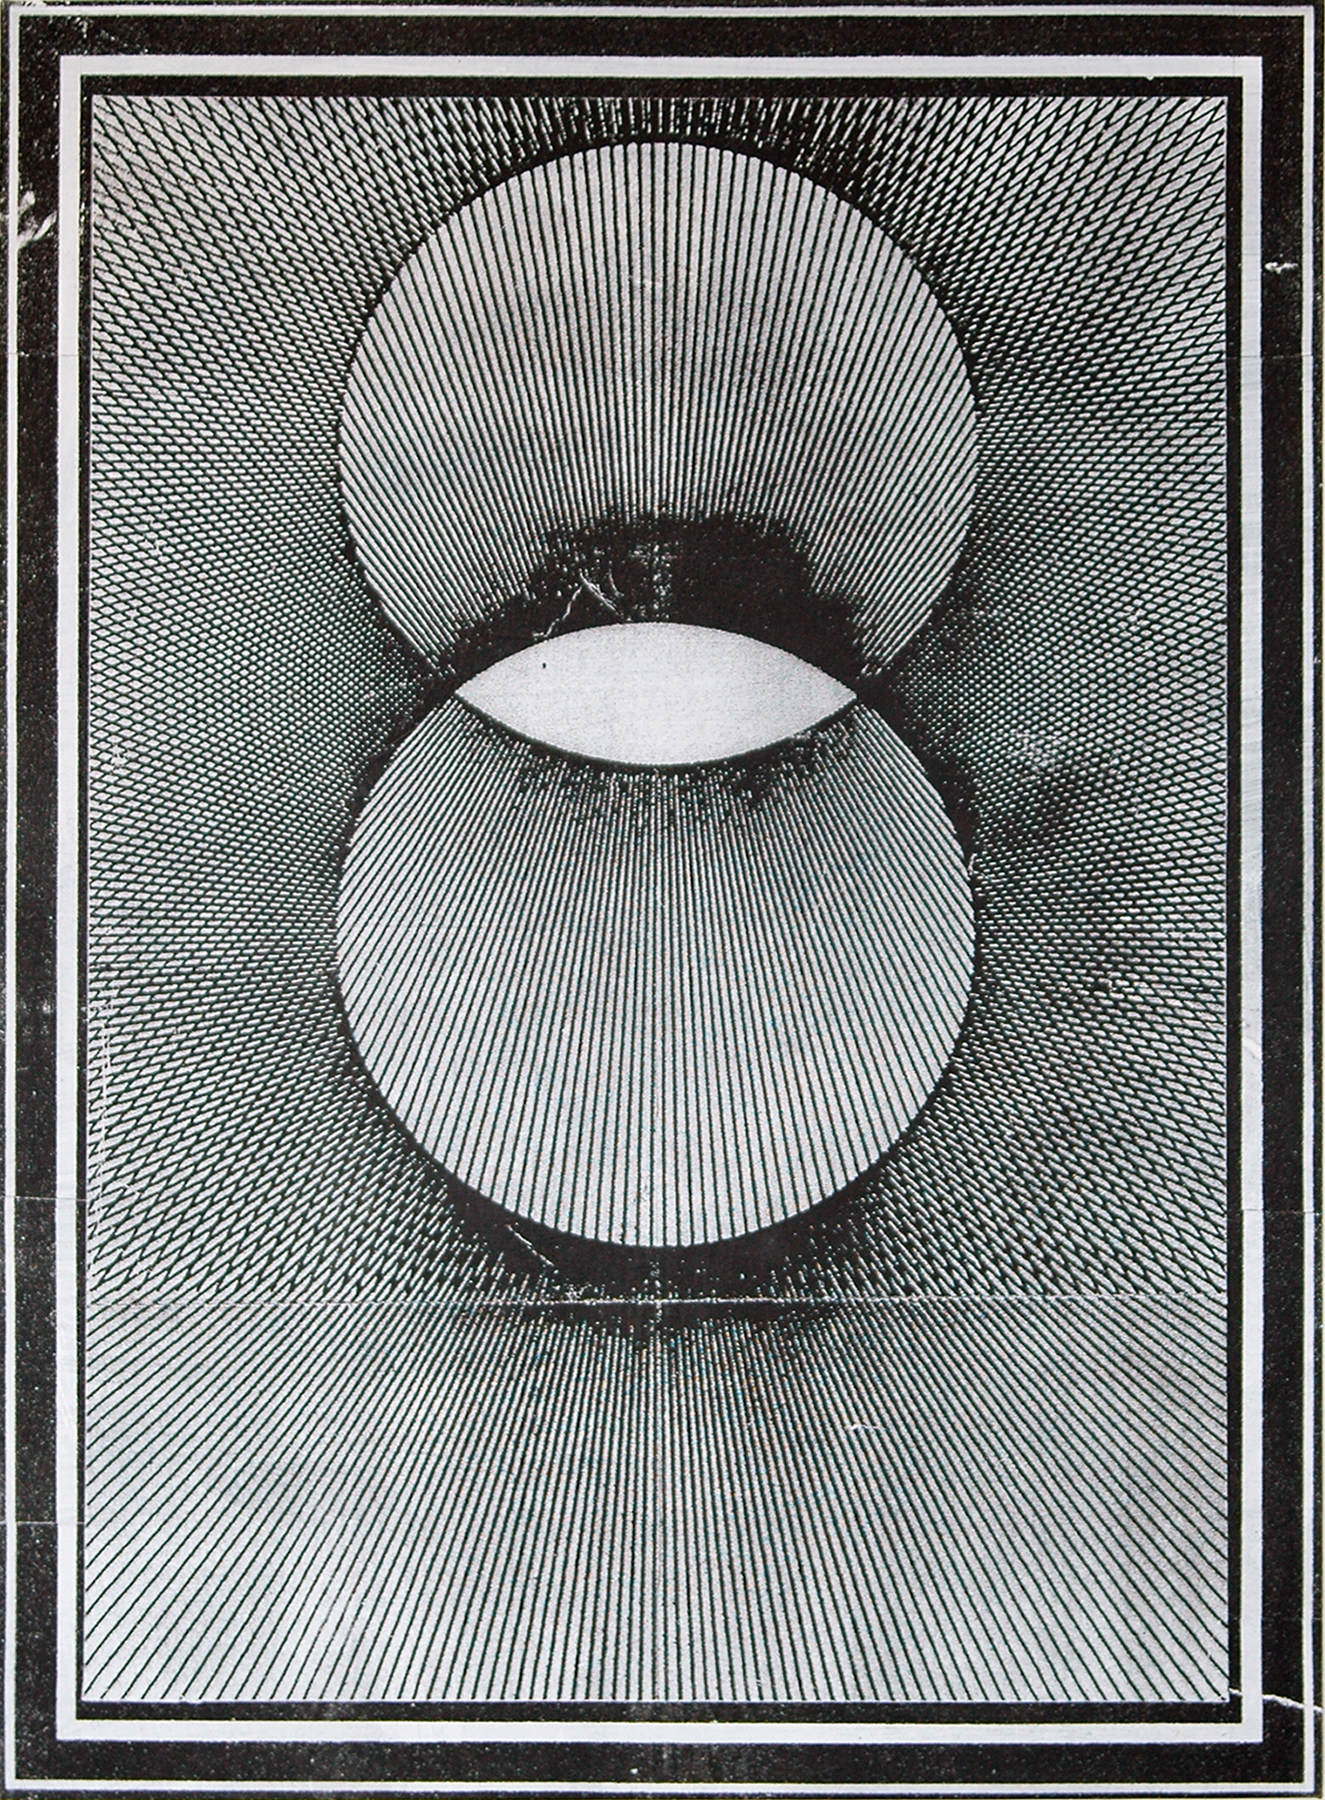 "GWENAËL RATTKE  Projections II (black & white) , 2012 acrylic and silkscreen on canvas, 48.25"" x 34.75"""